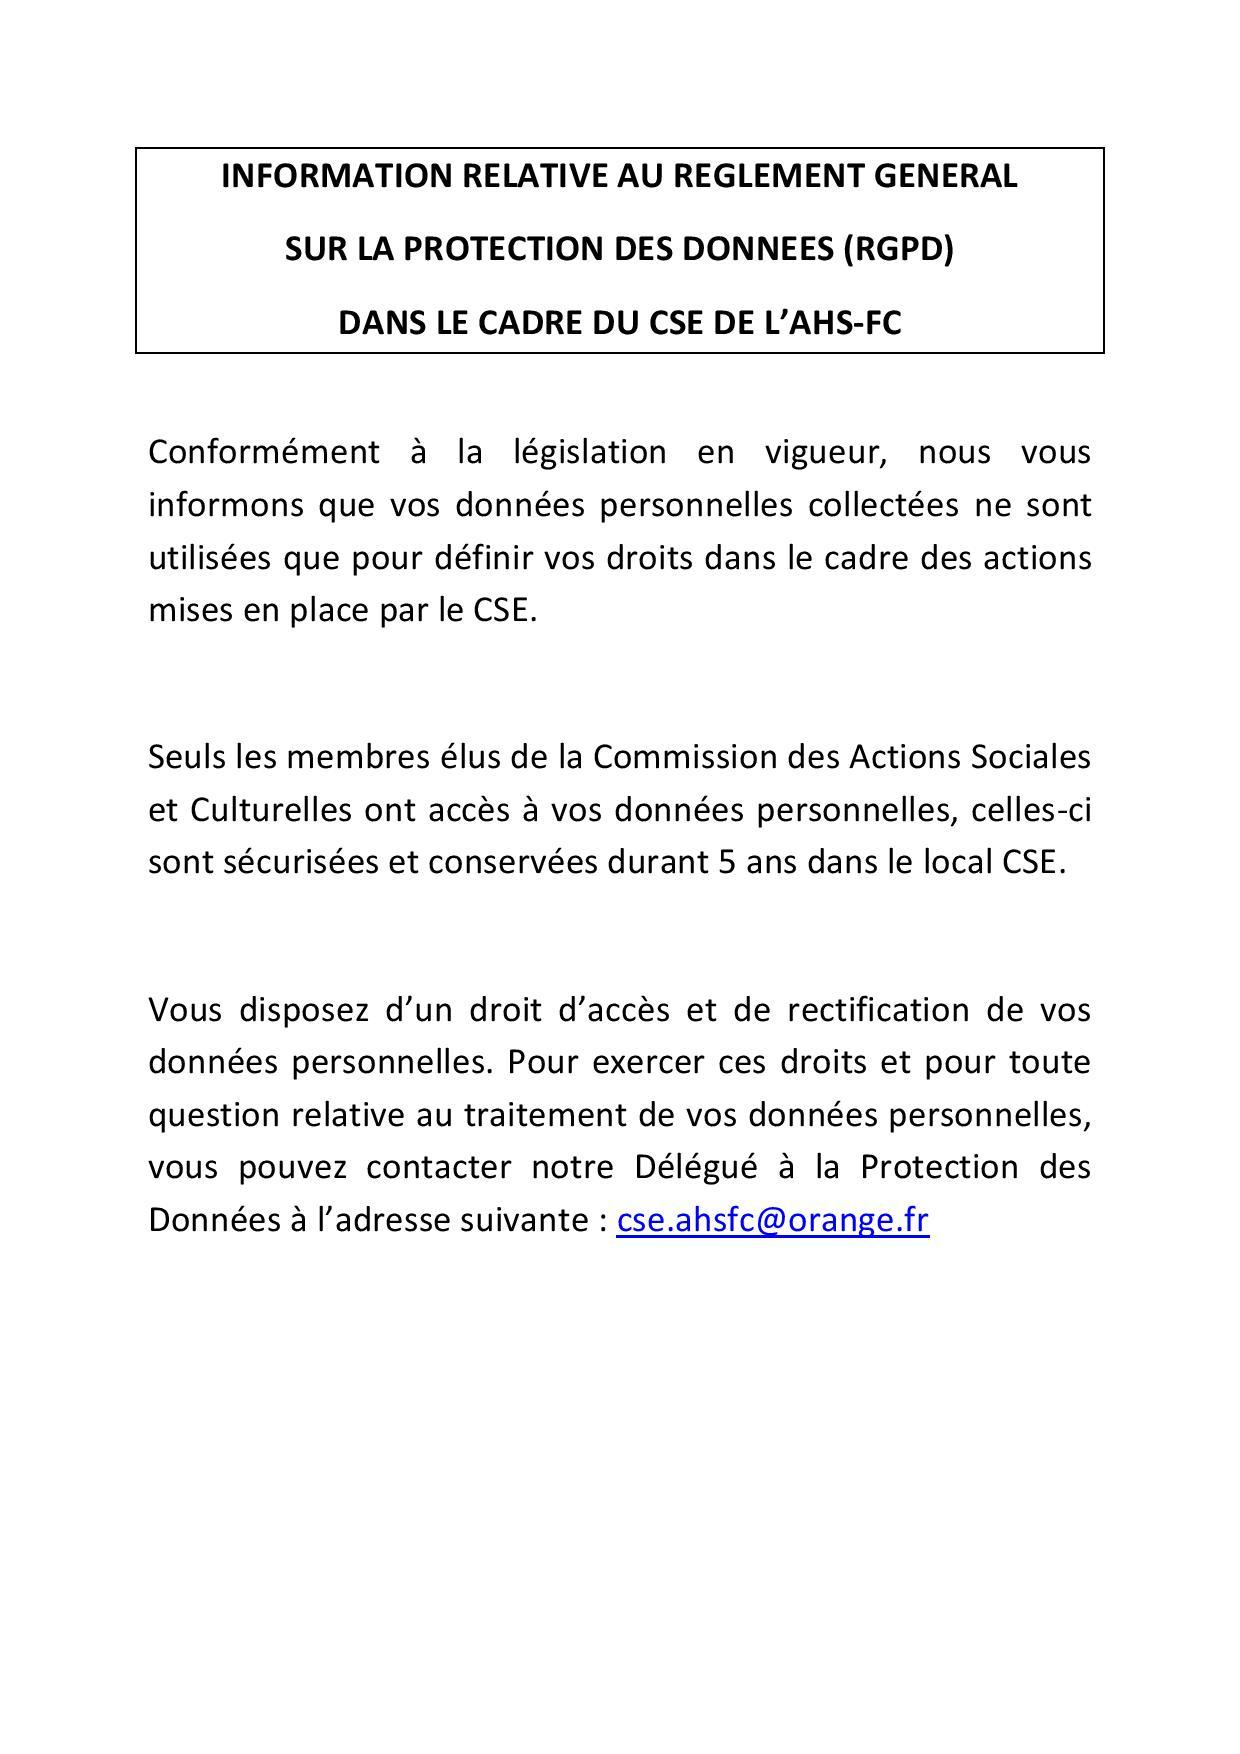 Information relative au reglement general page 3